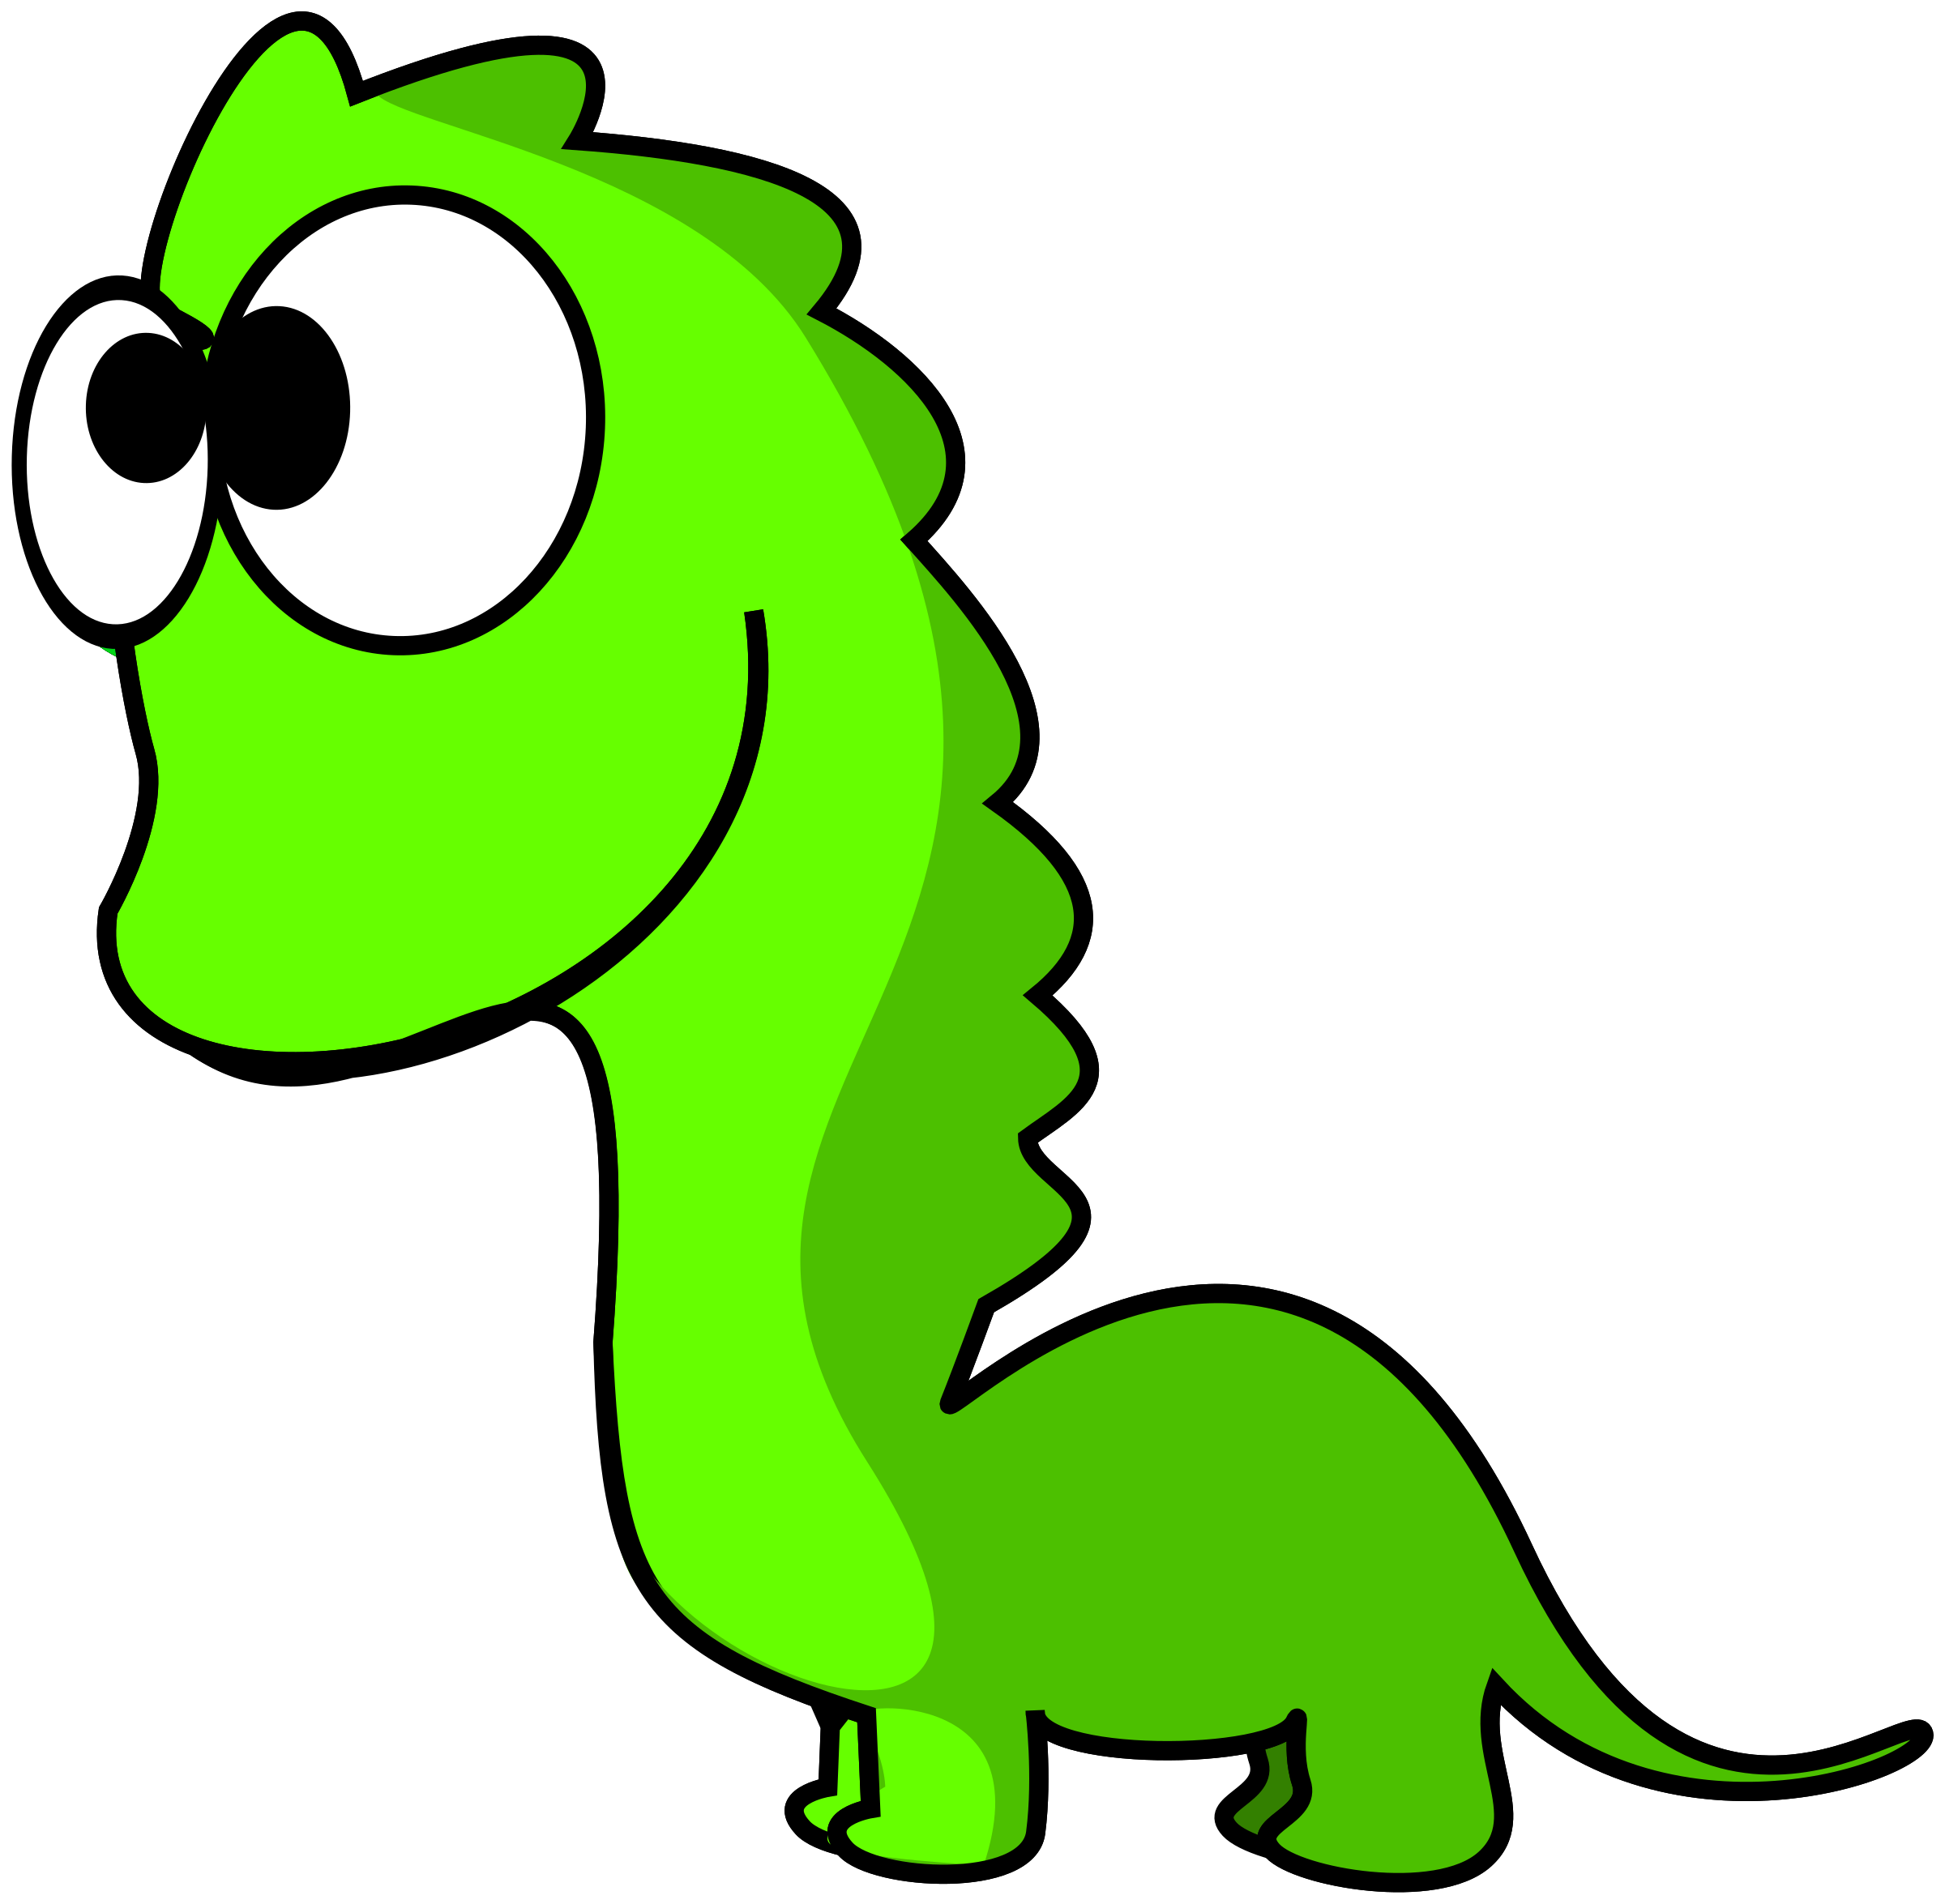 Cute dinosaur png. Dino icons free and